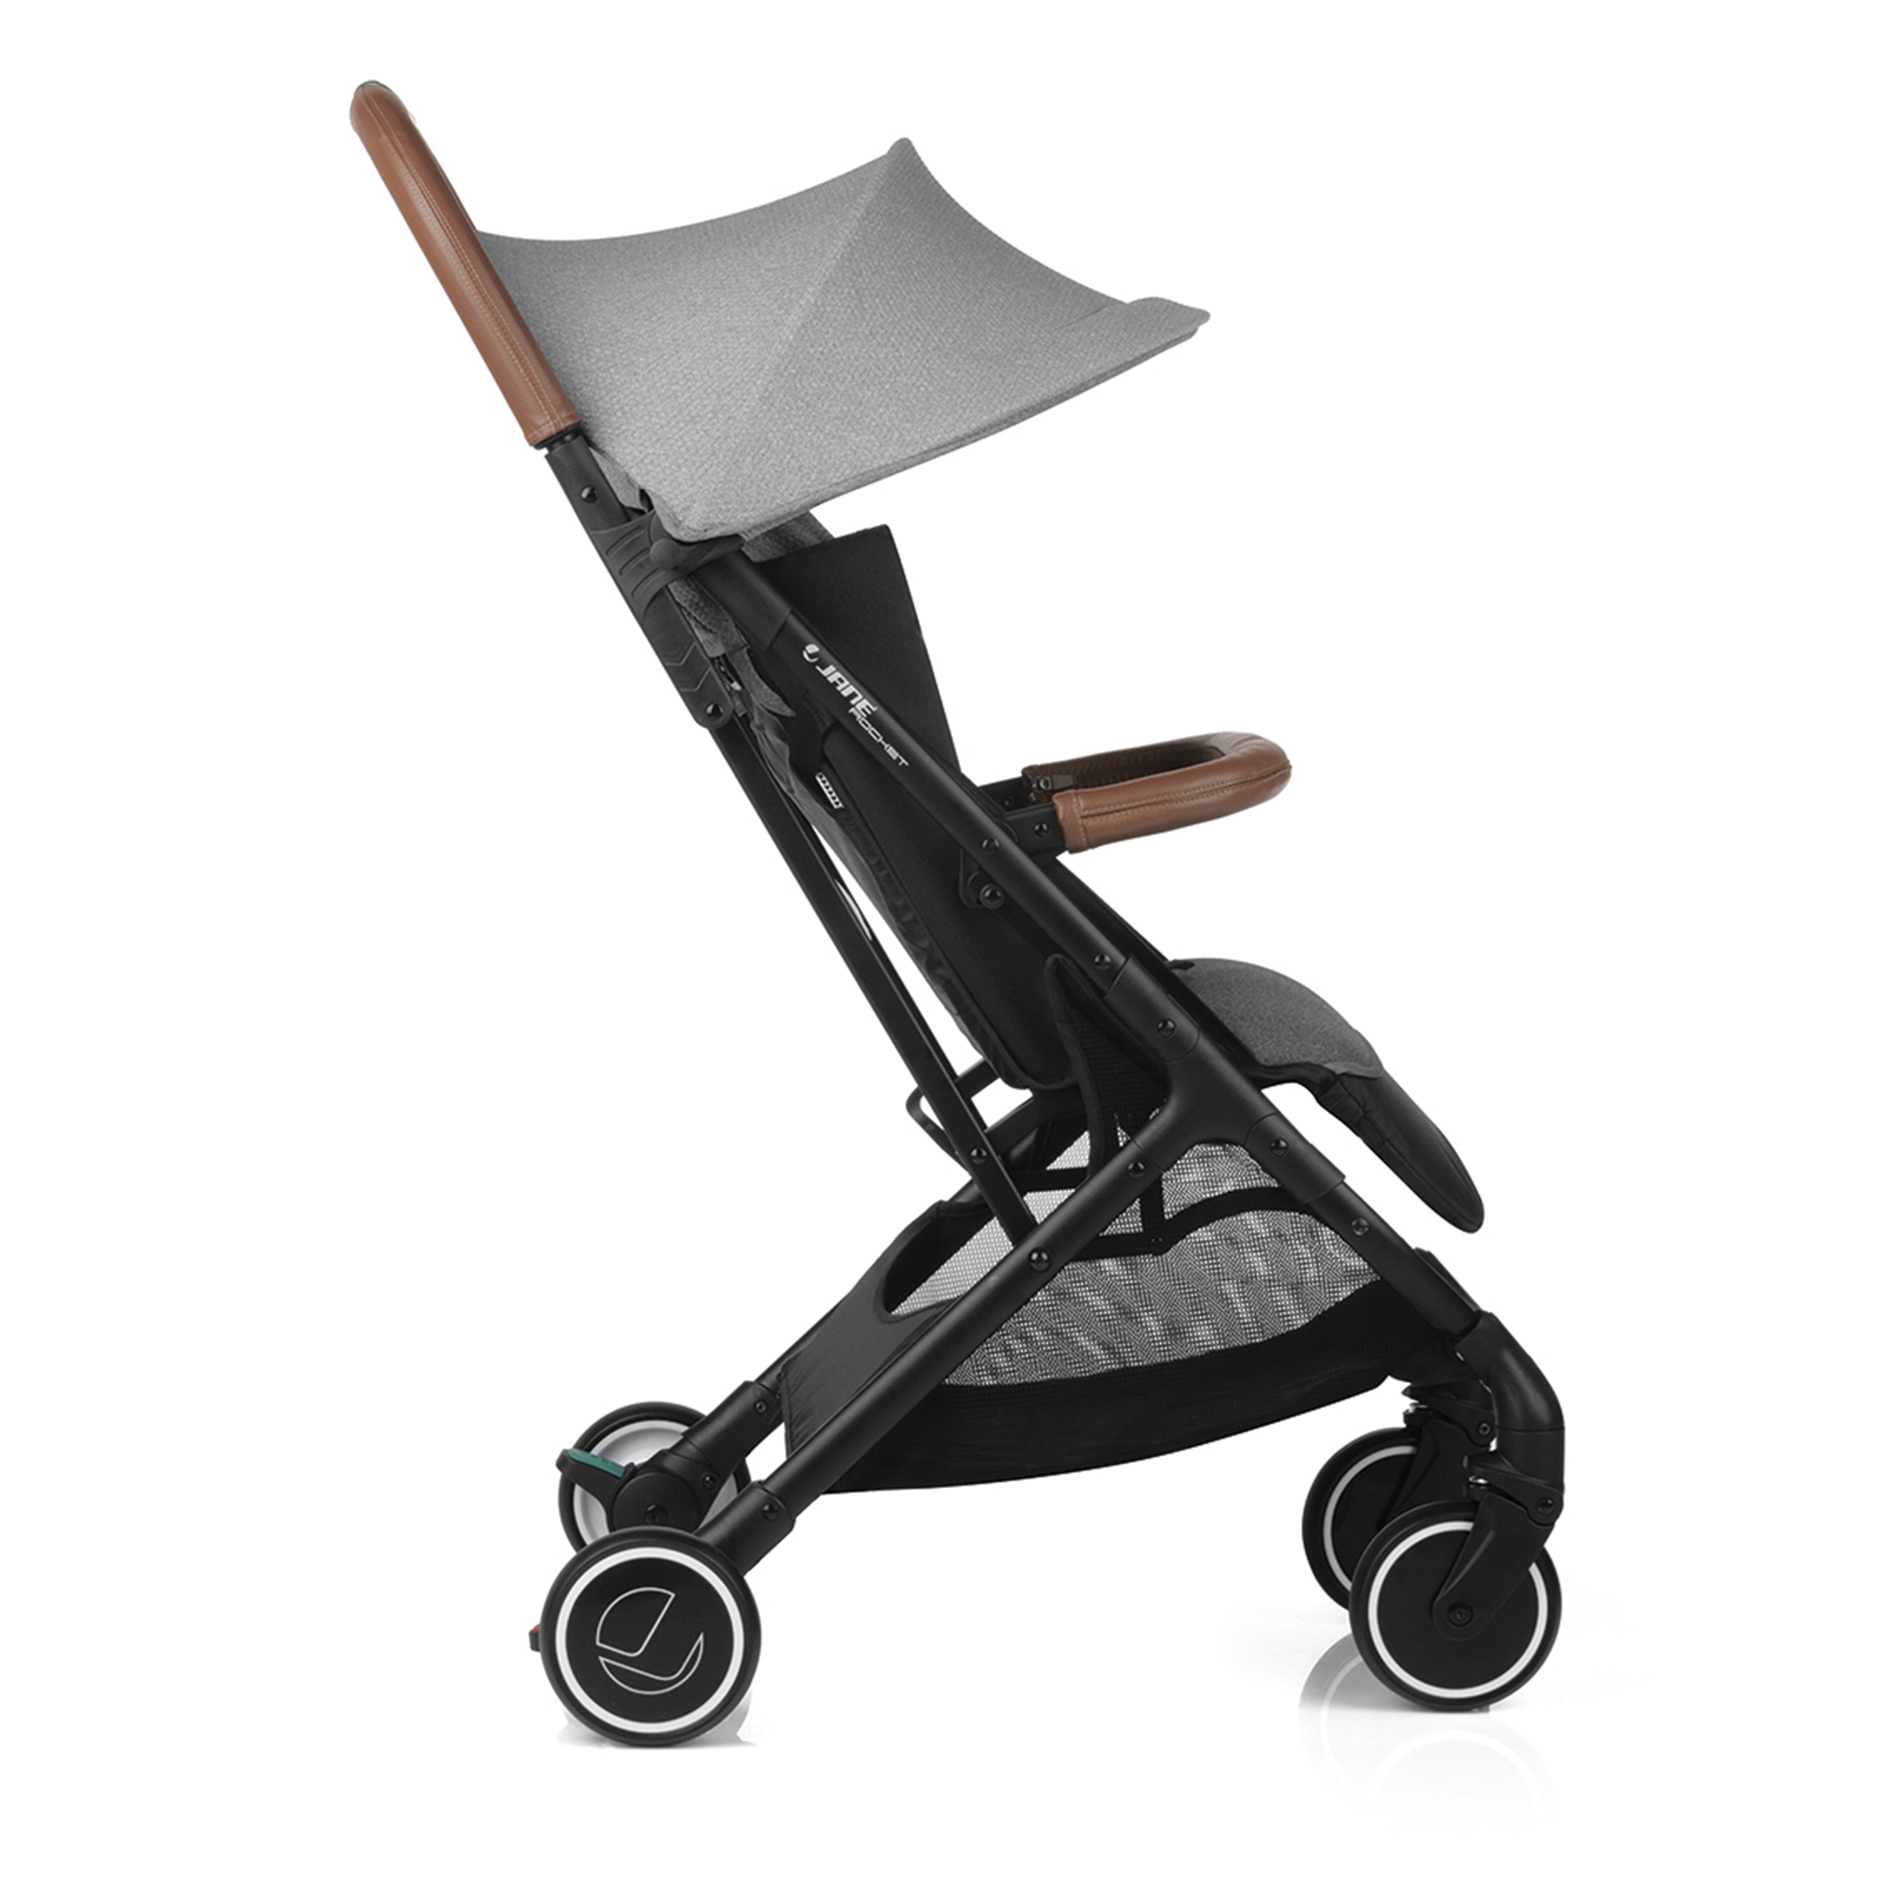 Silla rocket s53 jan for Silla jane rocket